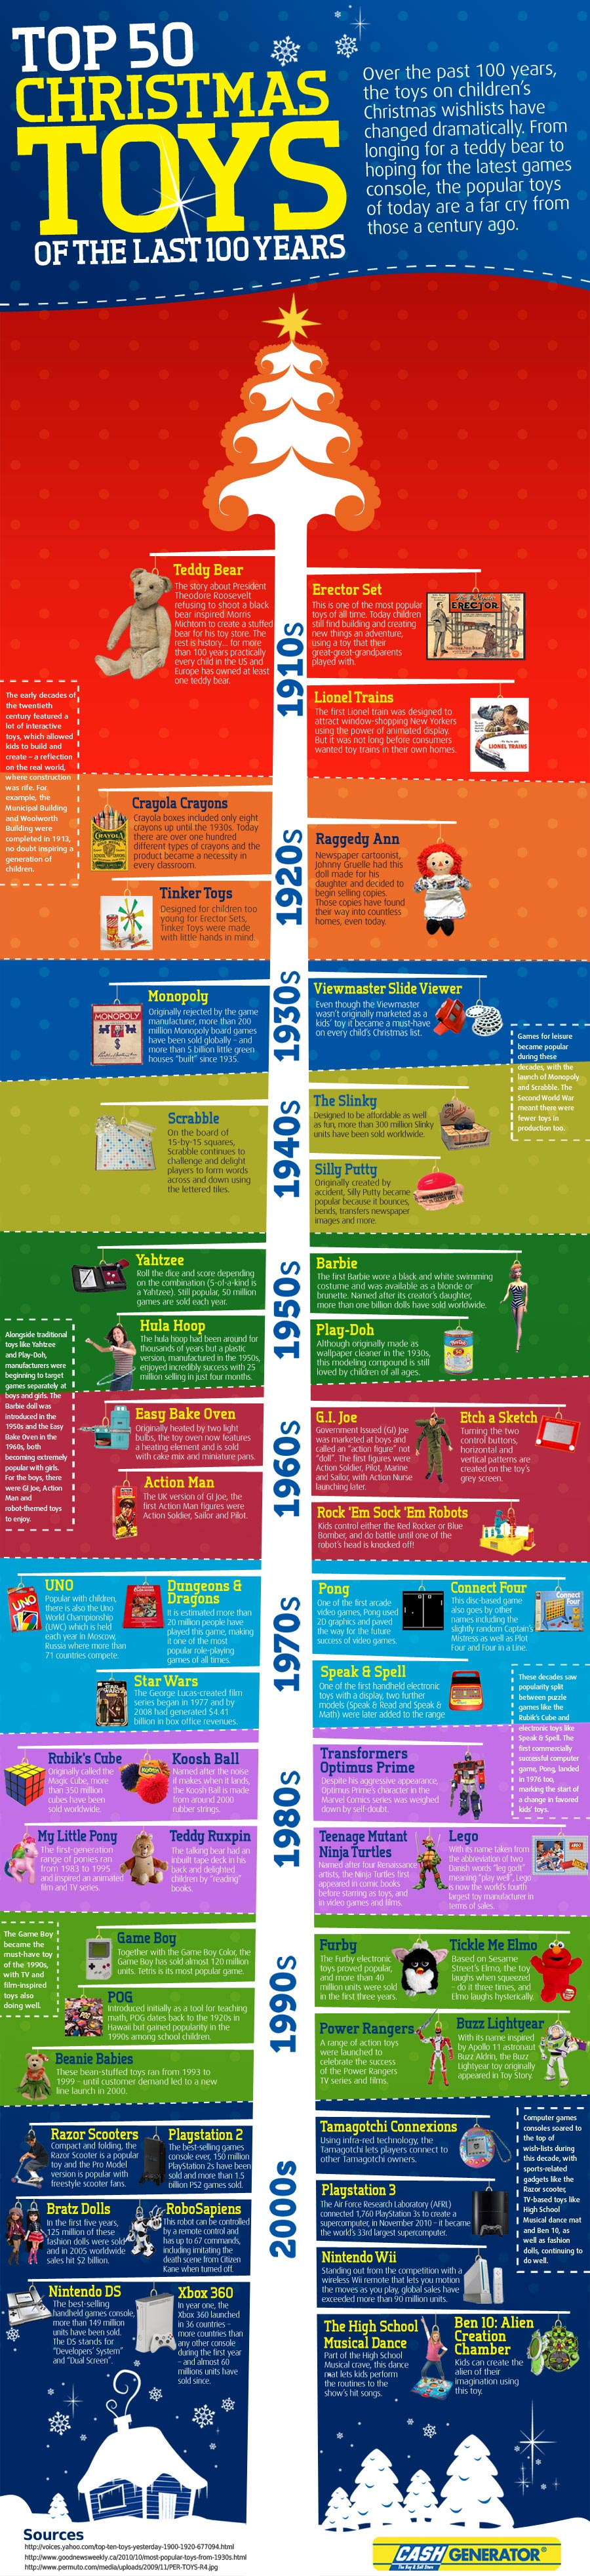 50 Most Popular Christmas Toys-Infographic